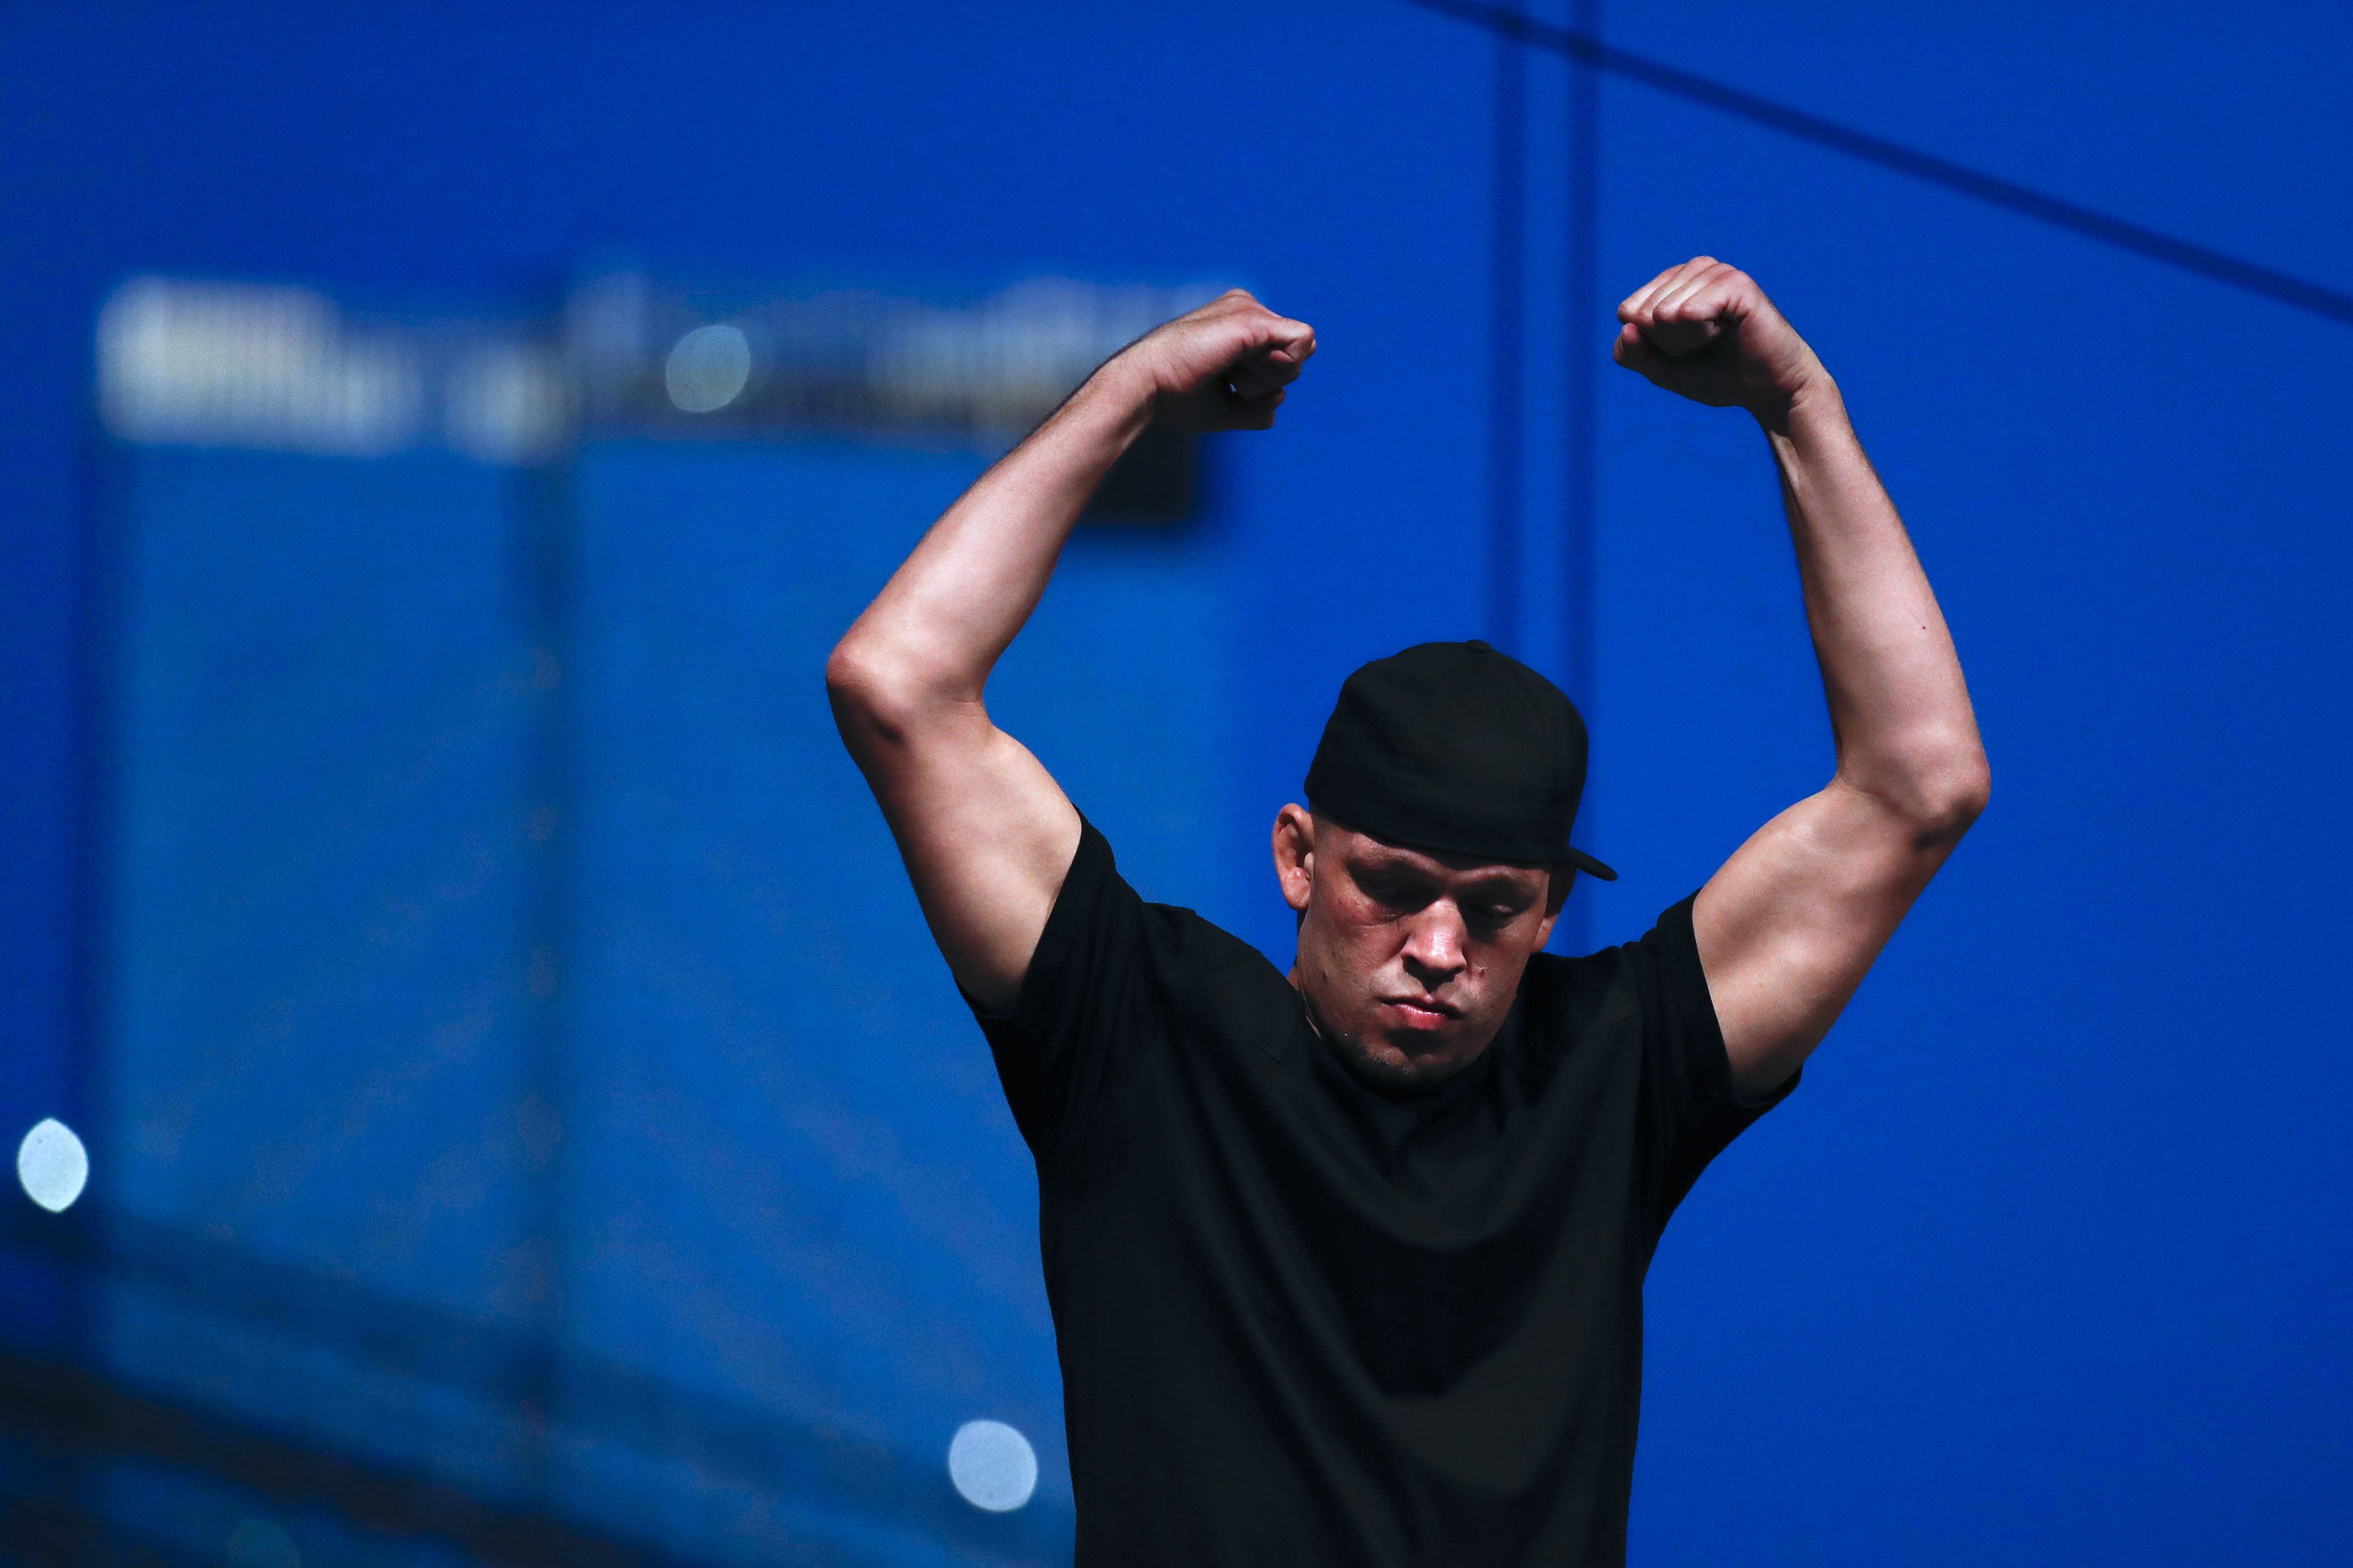 Nate Diaz during a press conference ahead of UFC 244 at The Rooftop at Pier 17 on September 19, 2019 in New York City. (Photo by Michael Owens/Zuffa LLC)